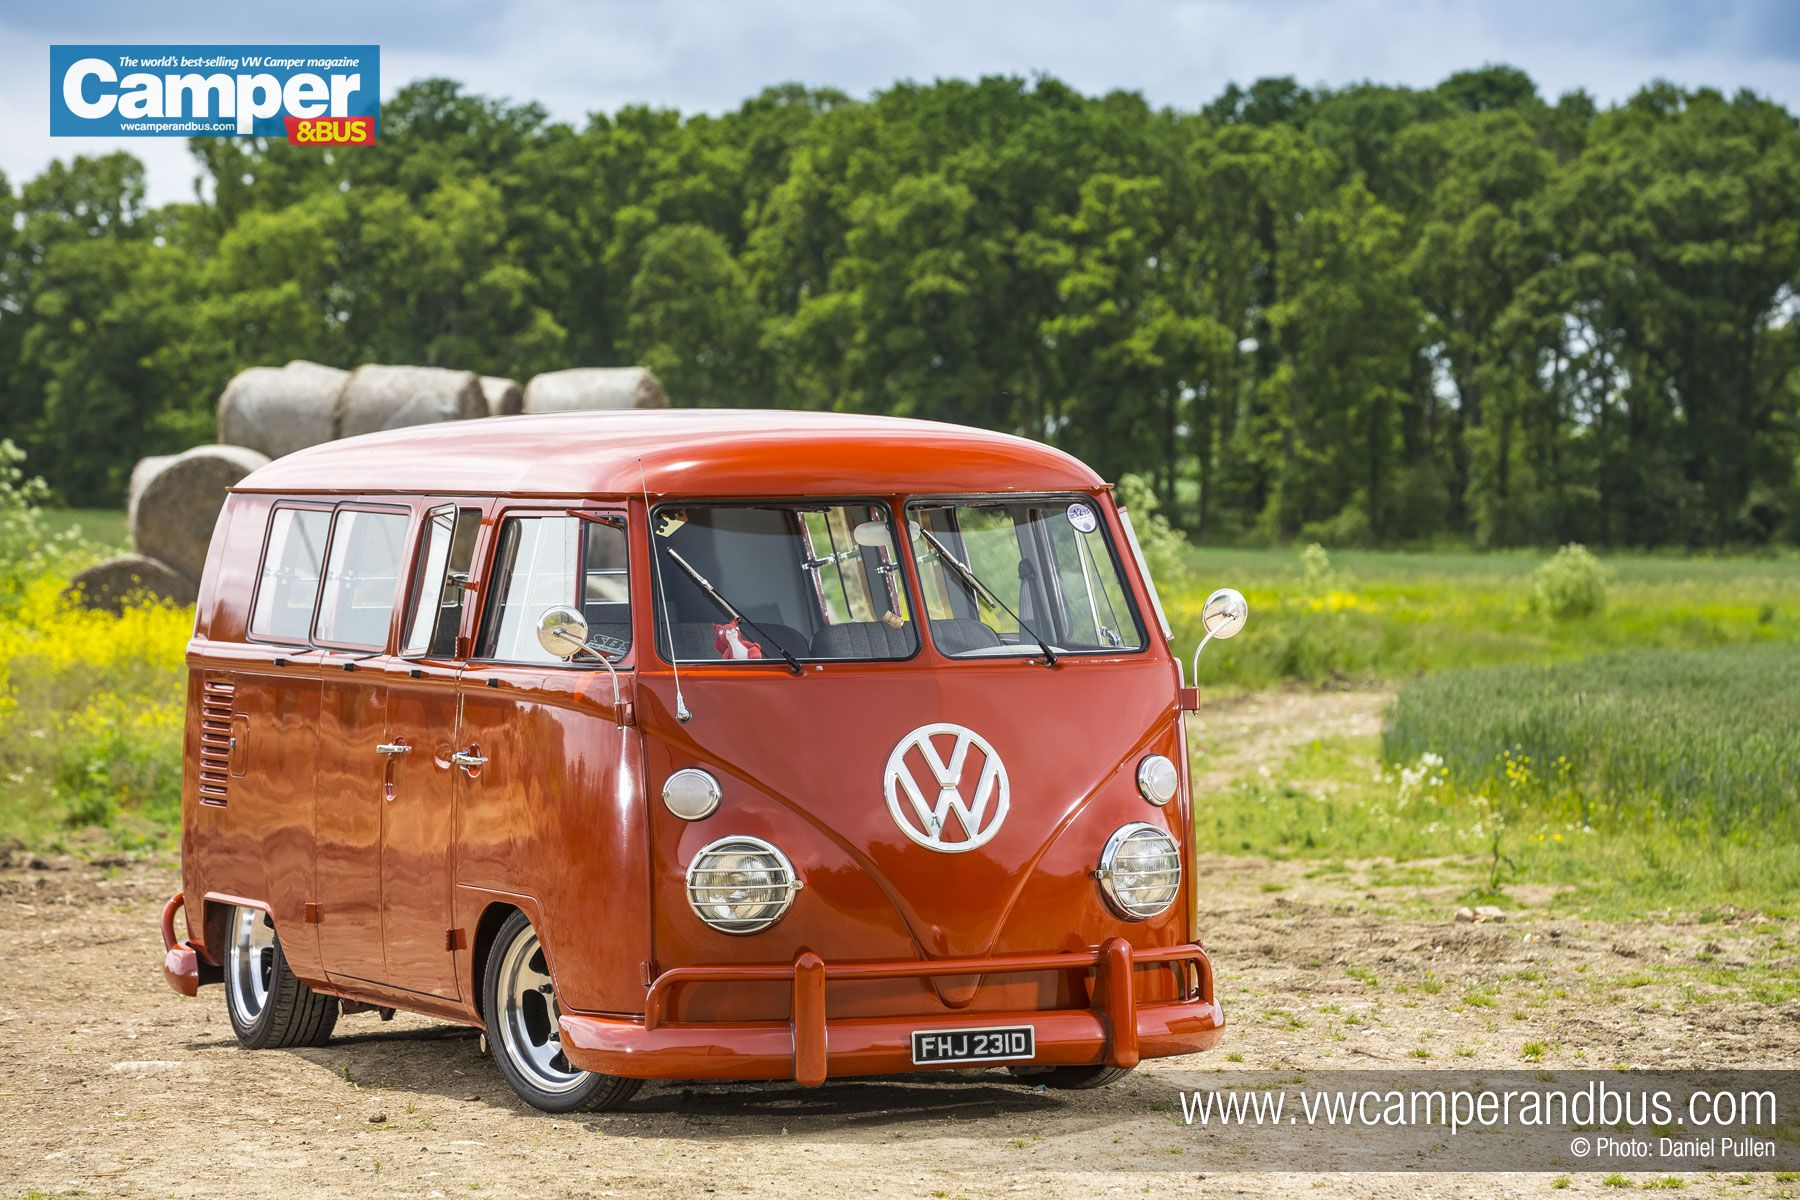 Vw Bus Camper Wallpaper October 2013 016 Bulli T1 Bis T5 HD Wallpapers Download Free Images Wallpaper [1000image.com]